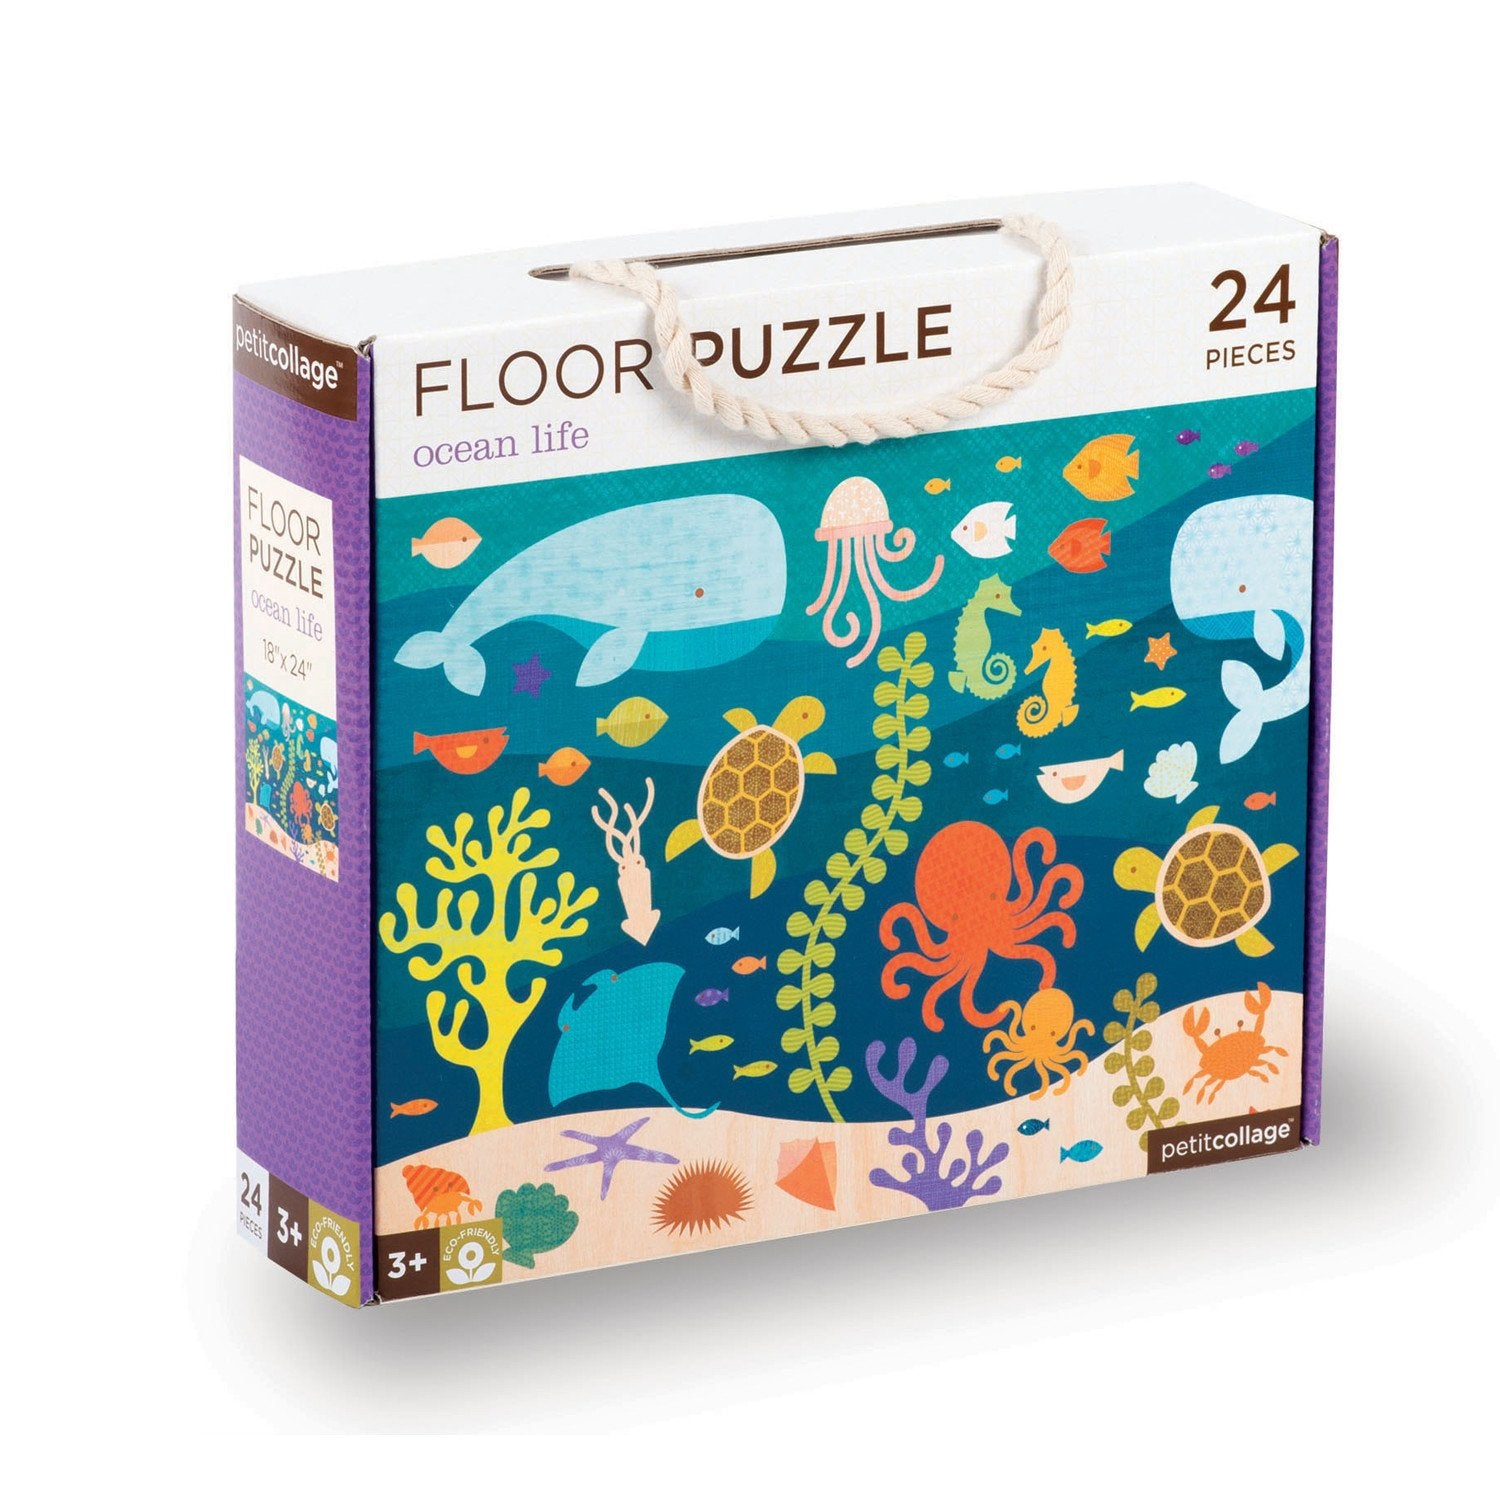 Petit Collage Floor Puzzles Petit Collage Puzzles Ocean Life at Little Earth Nest Eco Shop